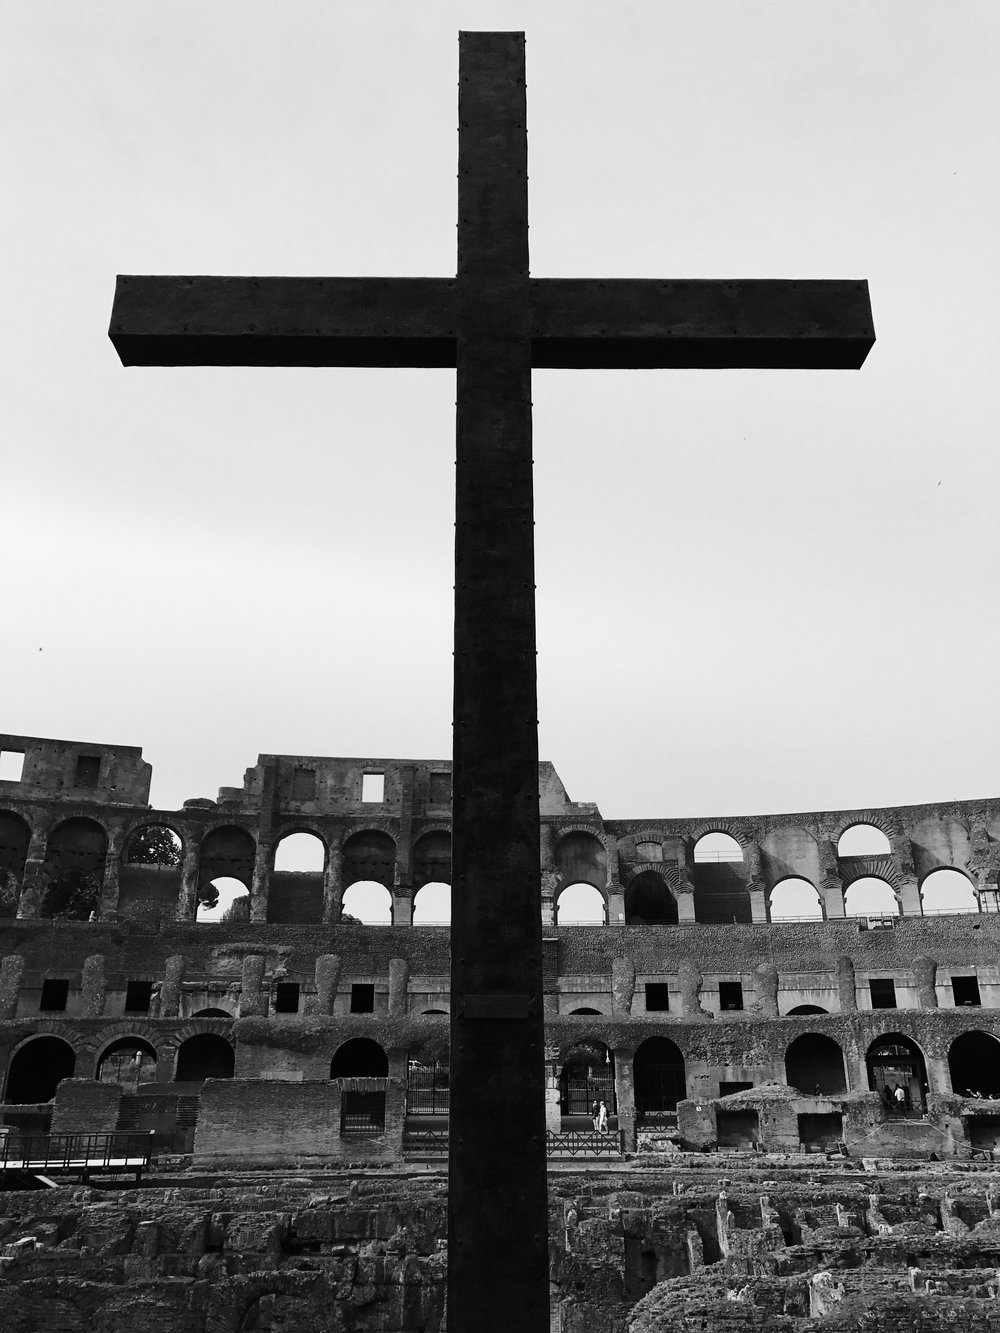 ÎRØN CRØSS - I've always loved learning about the history of the Roman Empire. Thanks to my job, I was able to travel to Rome and saw many of the historic sites. As a Christian, seeing this cross inside the Colosseum as a memorial to the martyrs who were probably sacrificed for Christ's sake was very moving.